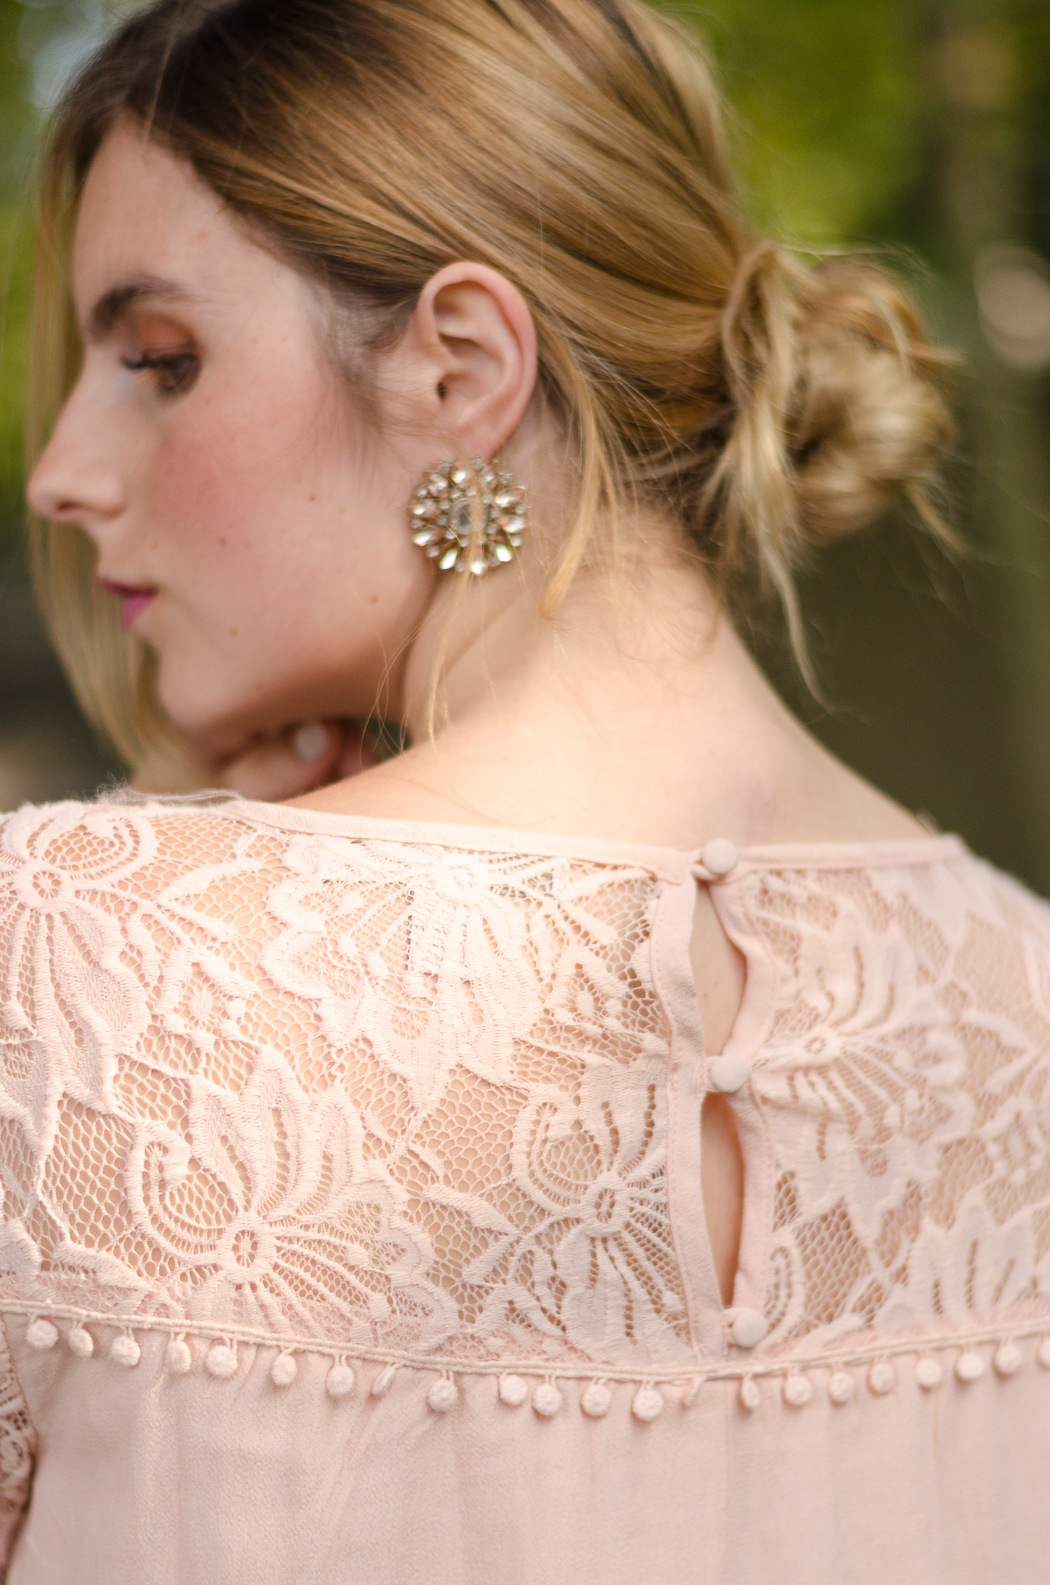 Wedding Guest Outfit Ideas The Urban Umbrella Style Blog Vancouver Fashion Lifestyle